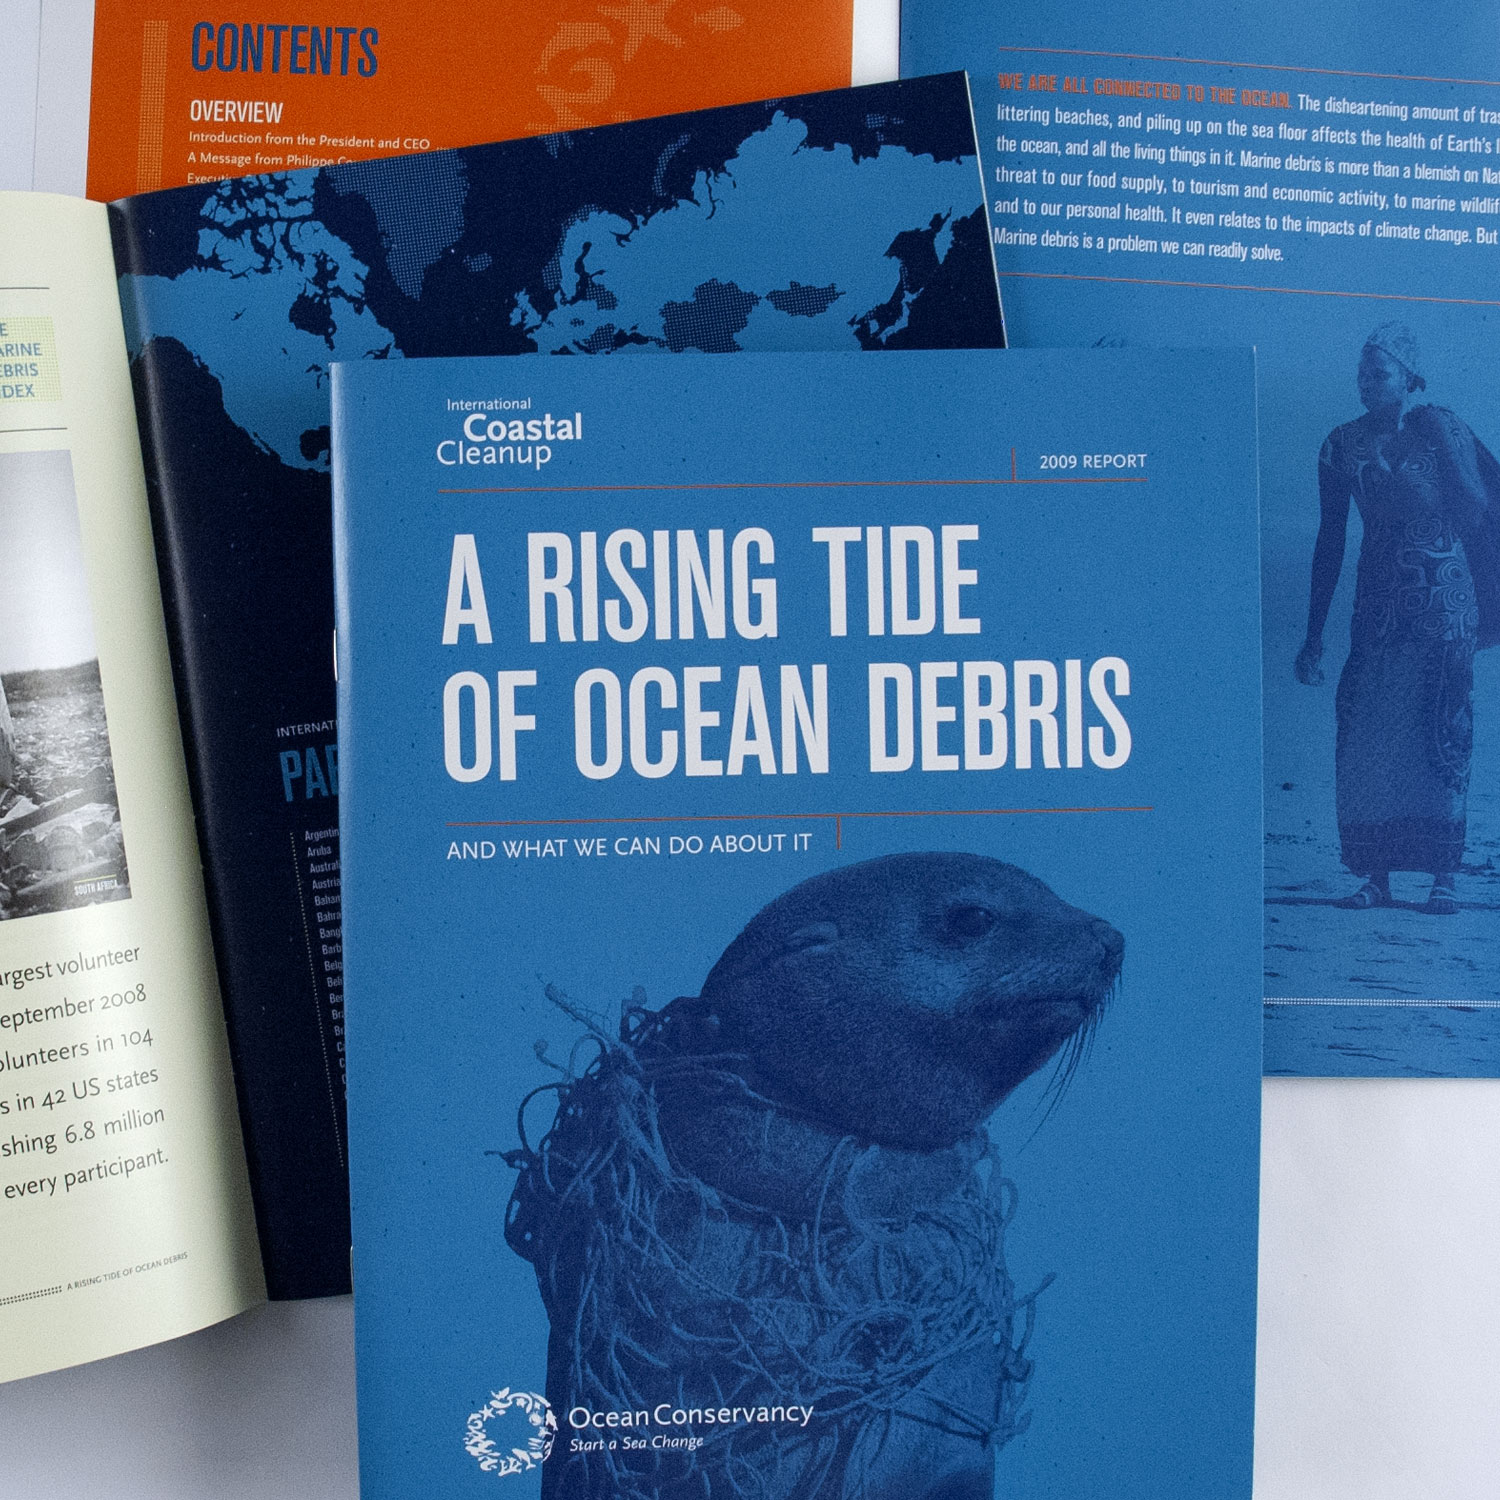 Annual Report – International Coastal Cleanup